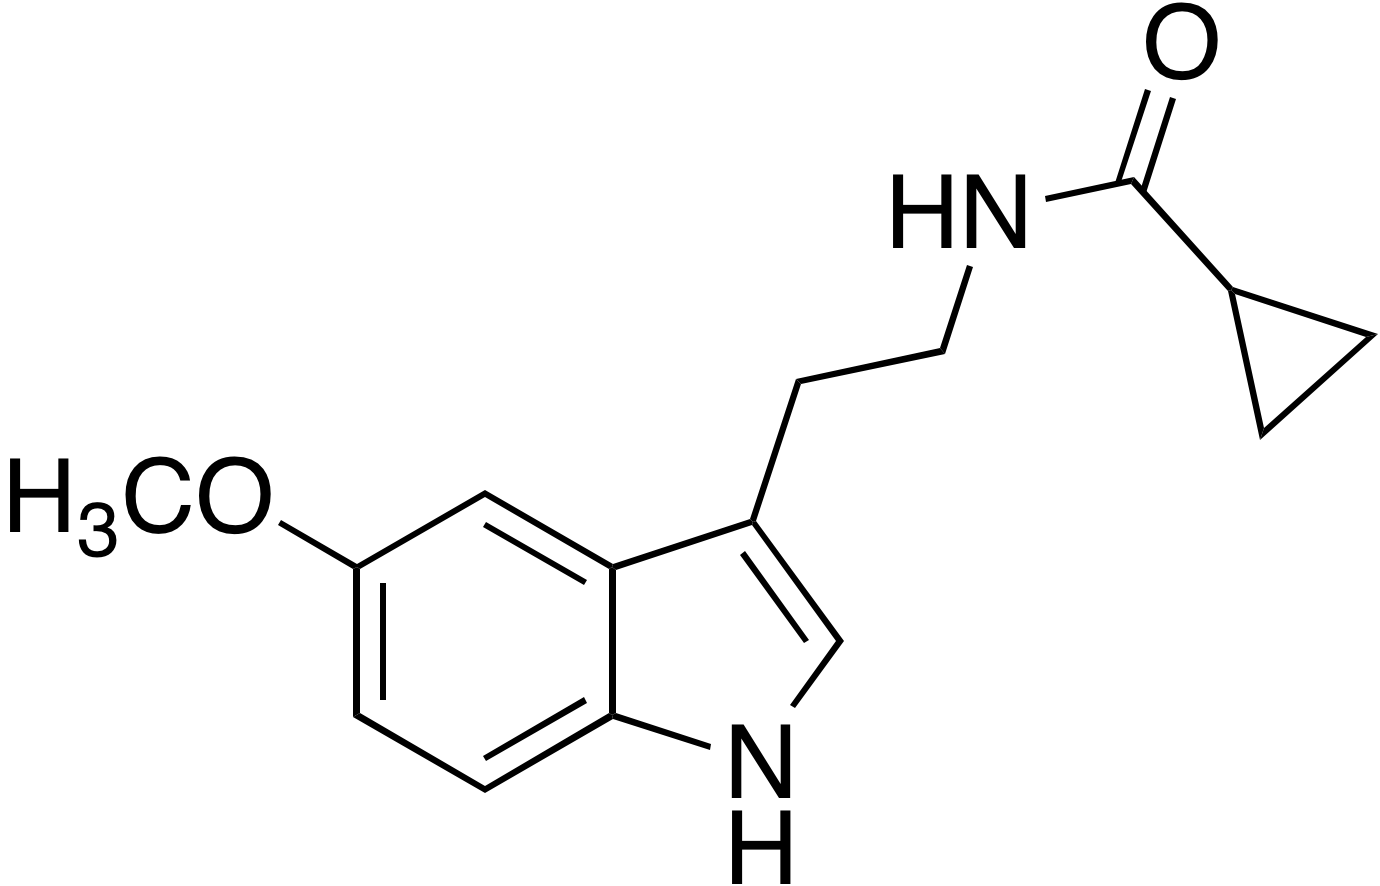 N-Cyclopropanoyl-5-methoxytryptamine